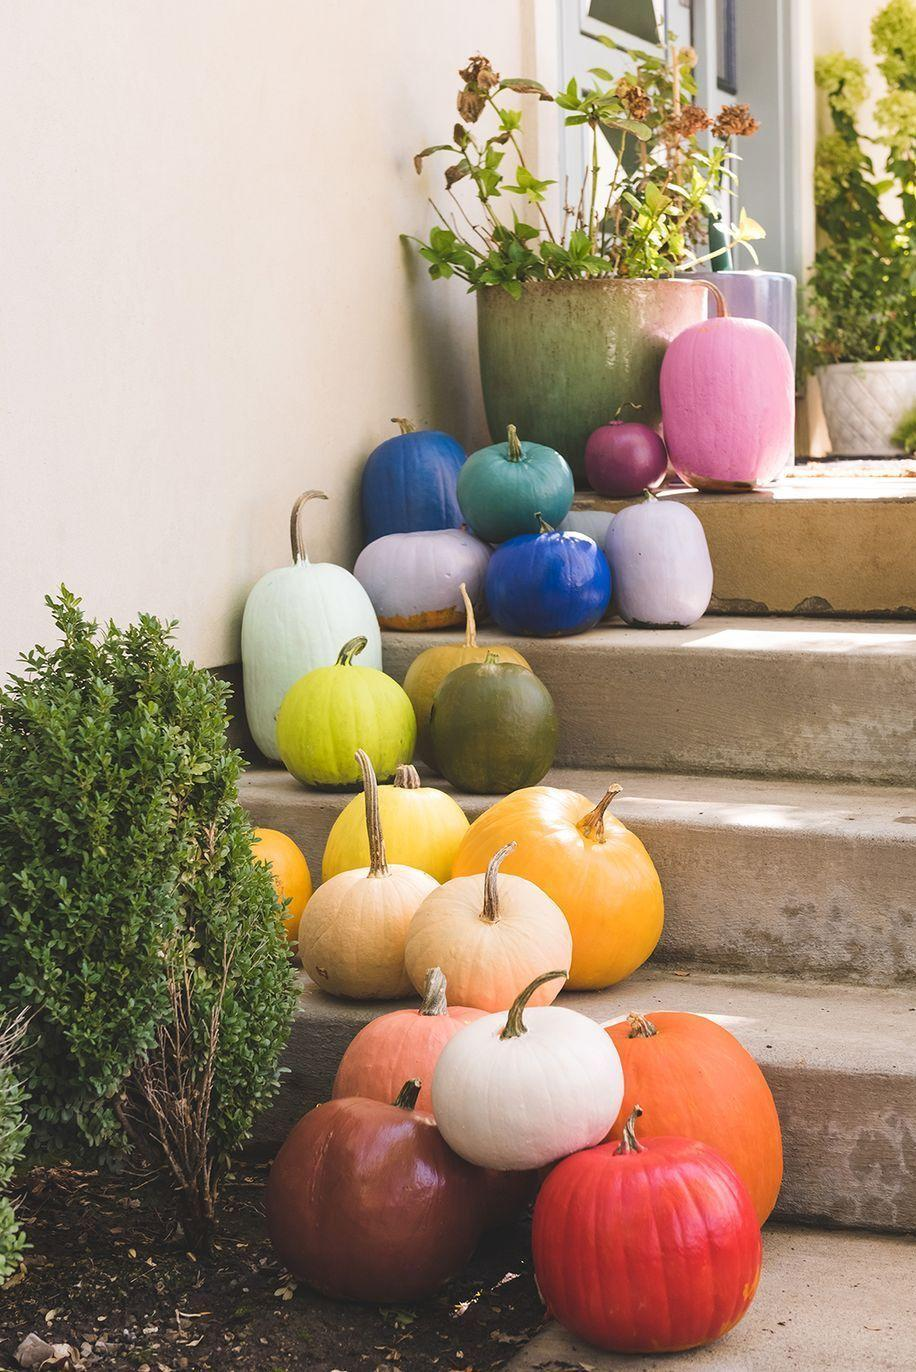 """<p>Pick up a trunk-load of pumpkins at the pumpkin patch and paint them a variety of colors for a cool rainbow effect. </p><p><em><a href=""""https://thehousethatlarsbuilt.com/2018/10/diy-rainbow-pumpkins.html/"""" rel=""""nofollow noopener"""" target=""""_blank"""" data-ylk=""""slk:Get the tutorial at The House That Lars Built »"""" class=""""link rapid-noclick-resp"""">Get the tutorial at The House That Lars Built »</a></em></p>"""